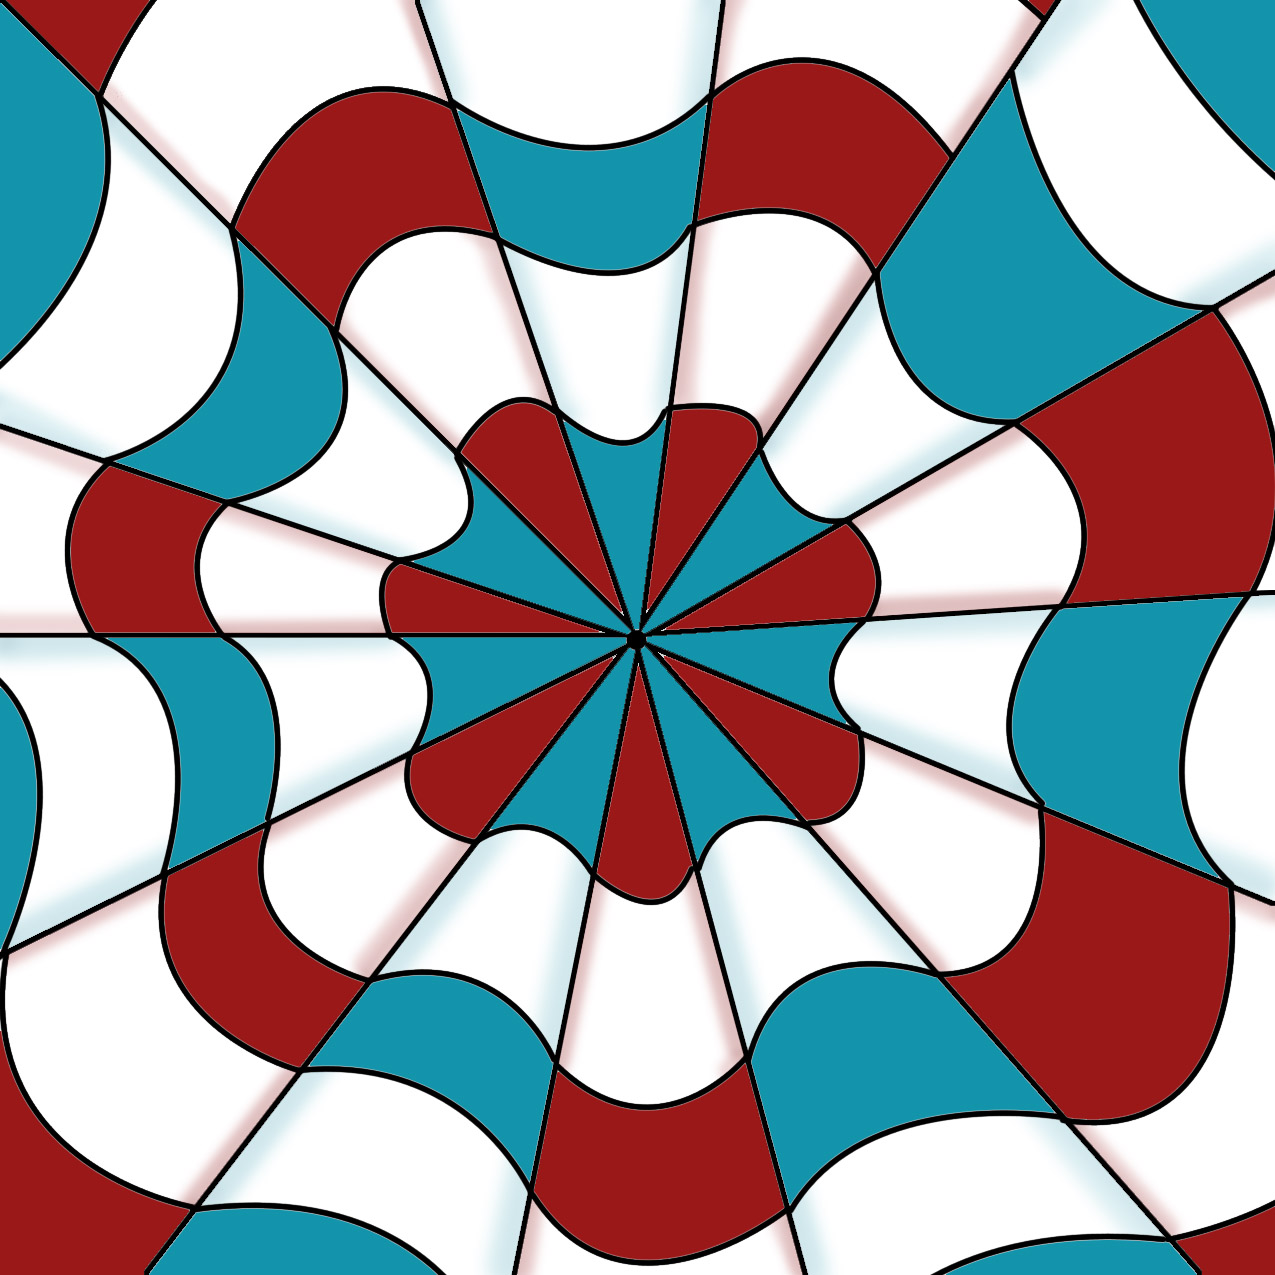 optical illusion illusions line digital project radial drawing op drawings projects cool math ruler tutorial hand middle coloring pages create